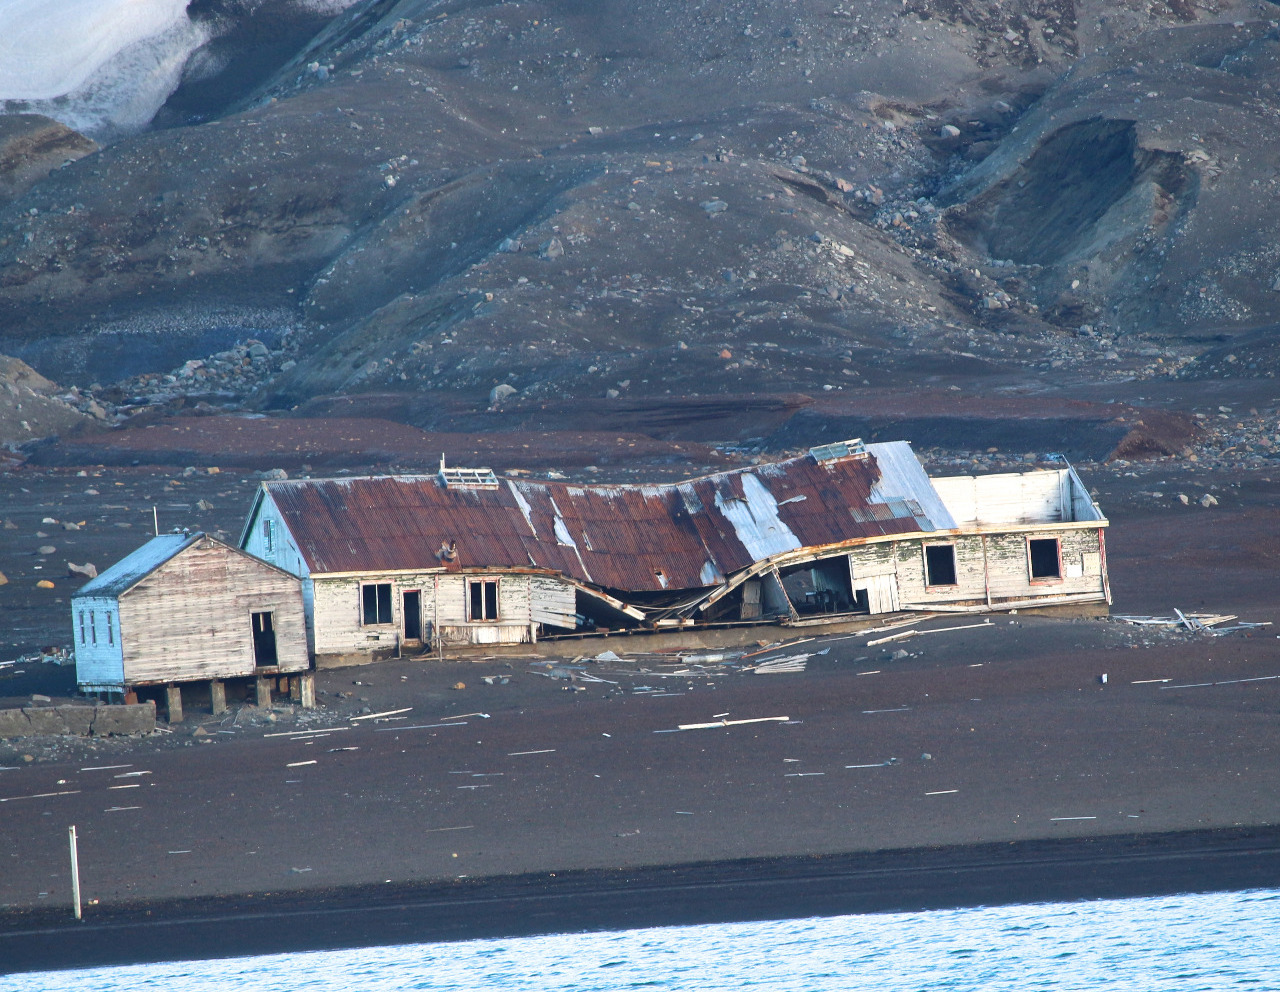 DEFUNCT WHALING STATION